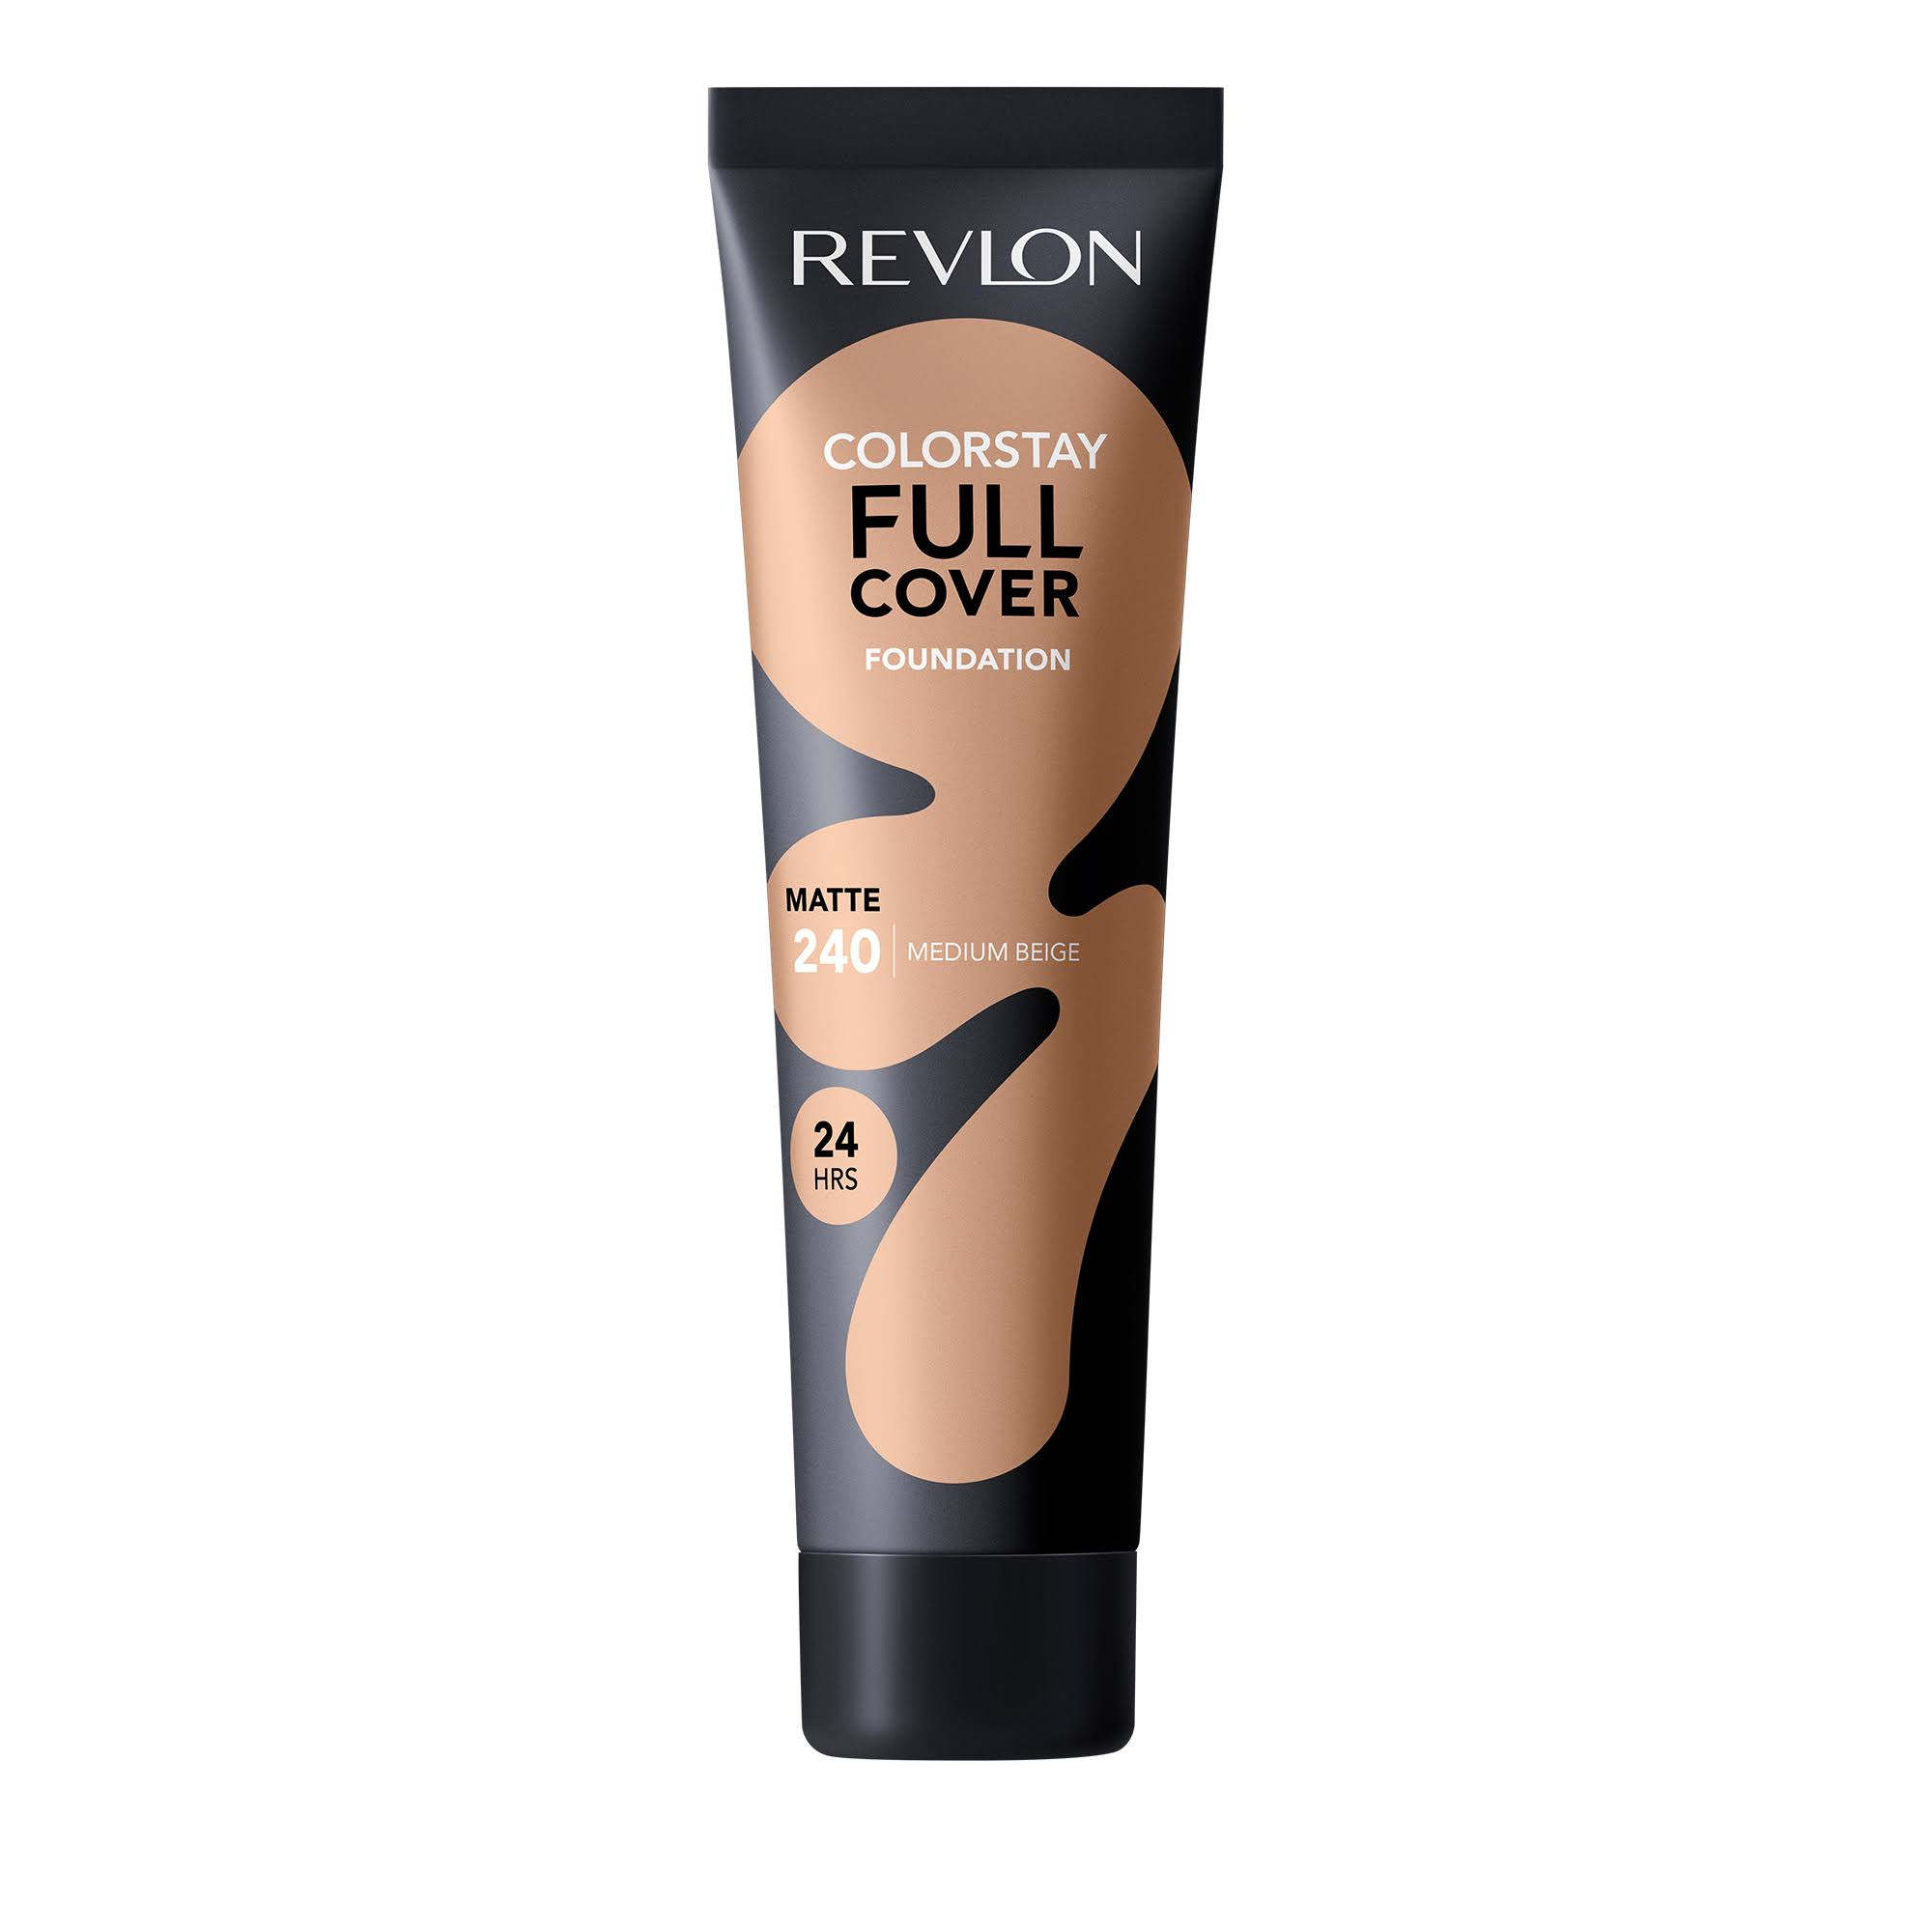 Revlon Colorstay Full Cover­ Foundation - Medium Beige, 1oz